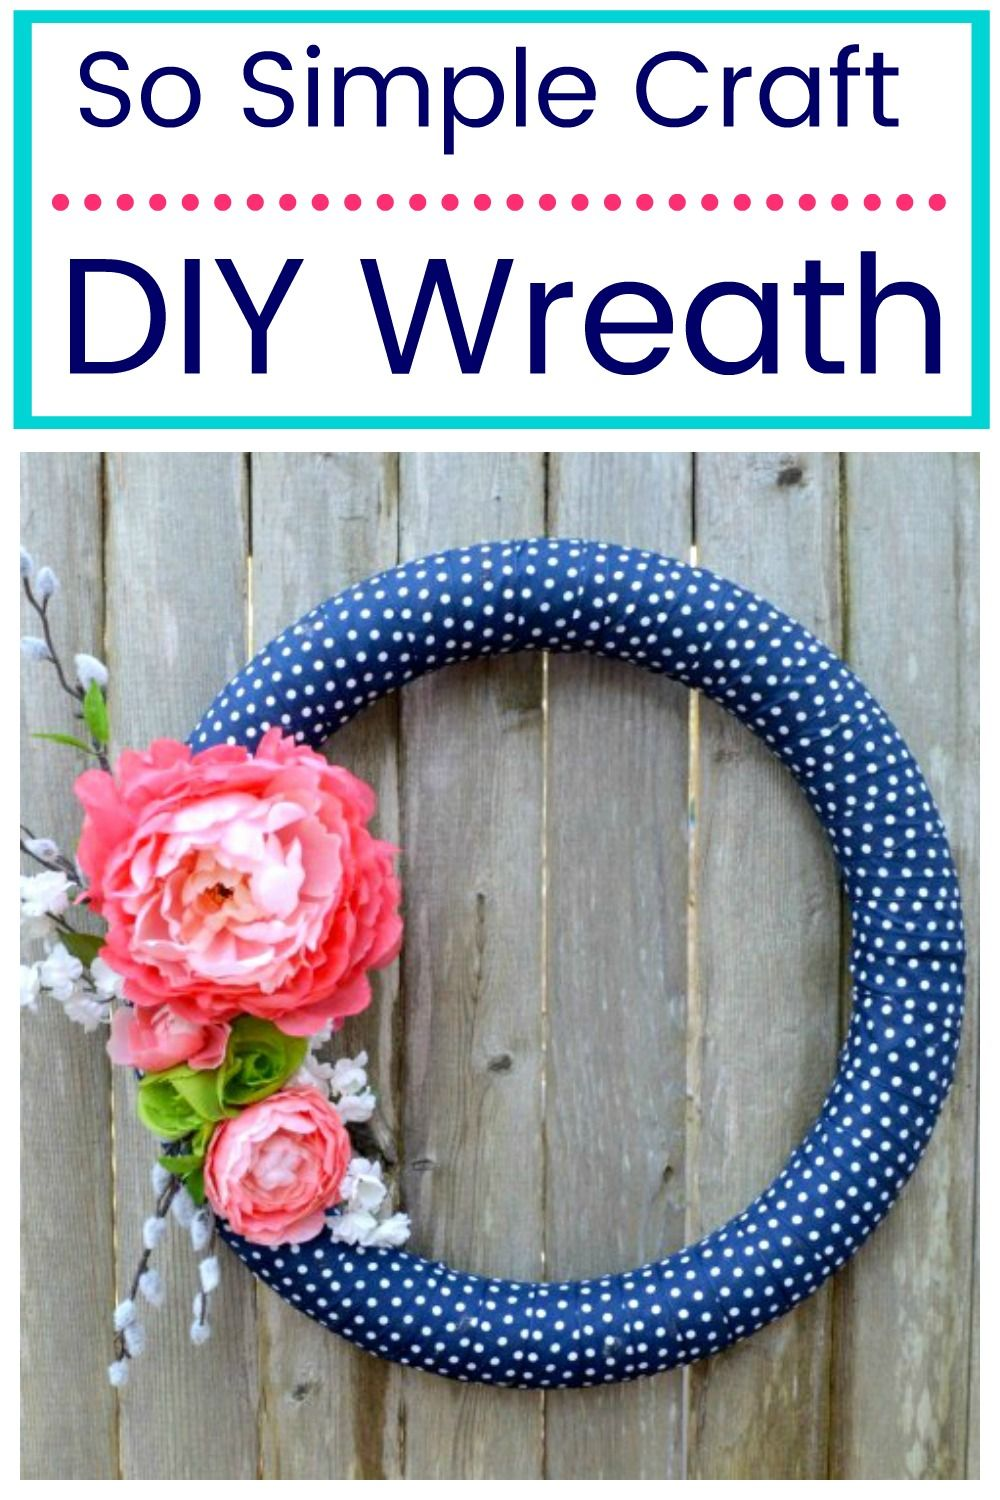 DIY Simple Spring Wreath - Diy wreath, Diy spring wreath, Easy crafts, Wreaths, Easy diy crafts, Diy crafts - Try this simple DIY for a Beautiful Spring Wreath  DIY Simple Spring Wreath